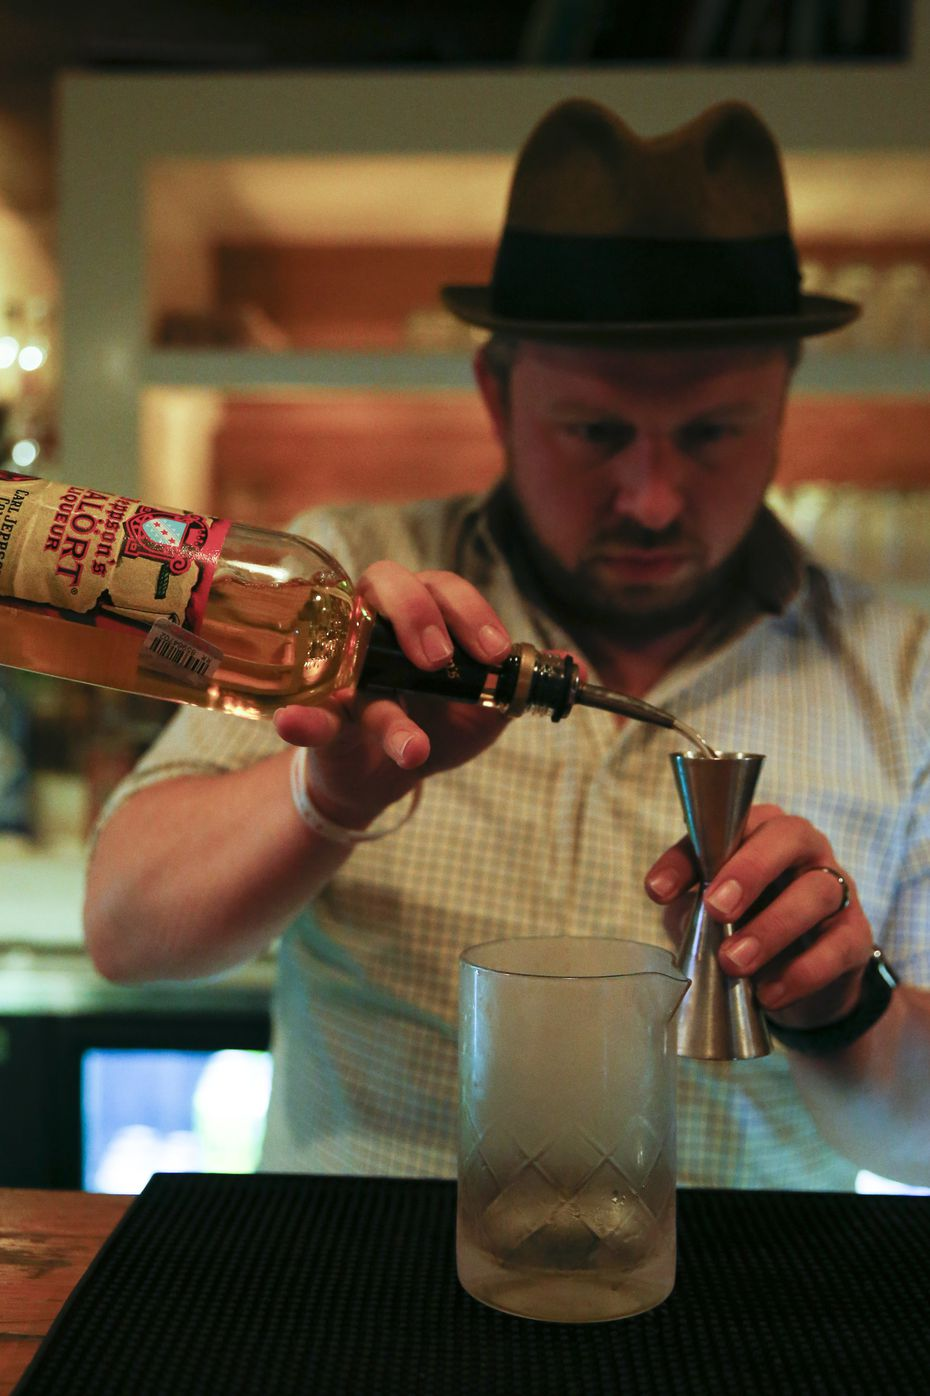 Bartender Jason Pollard mixes the River Runs Backwards cocktail, which utilizes Malort, a Scandinavian-style liqueur known for its off-putting taste, at The Usual bar on Tuesday, Jan. 14, 2020, in Fort Worth.